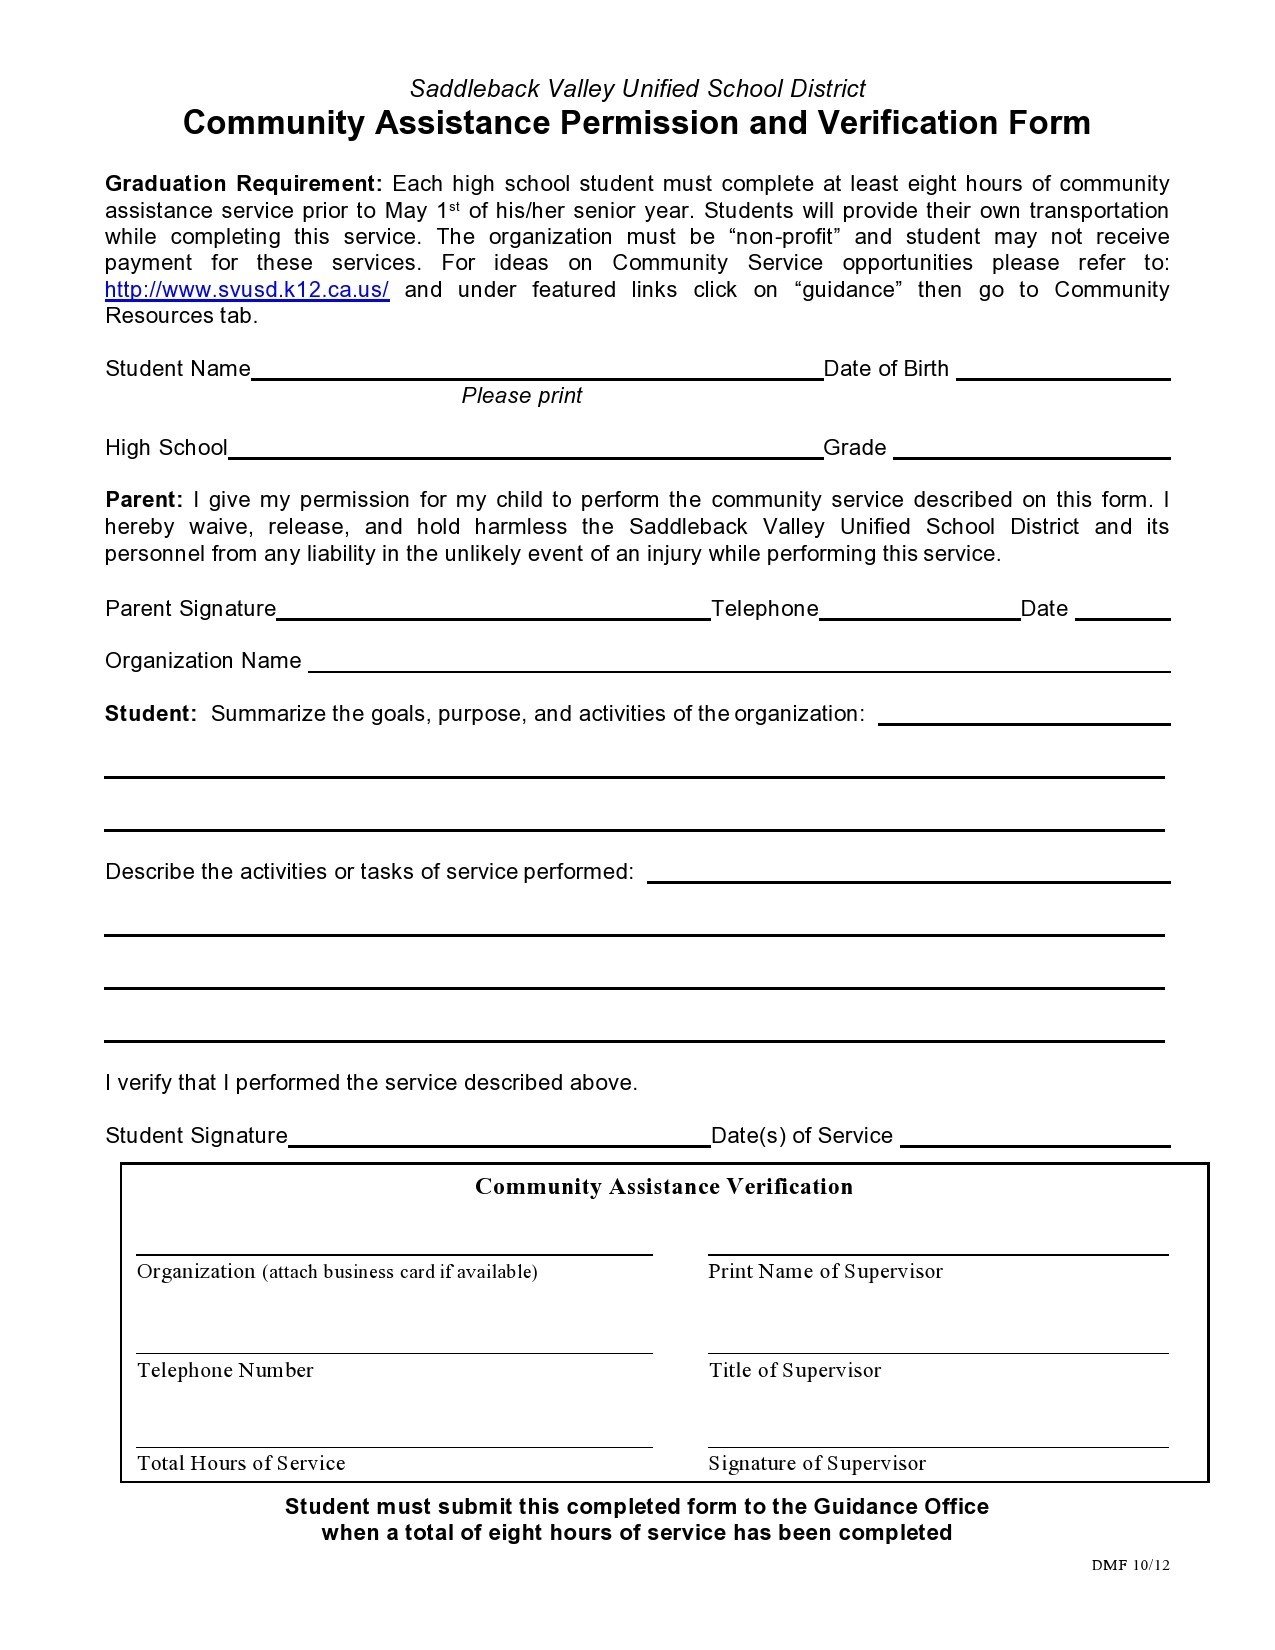 Free community service form 23